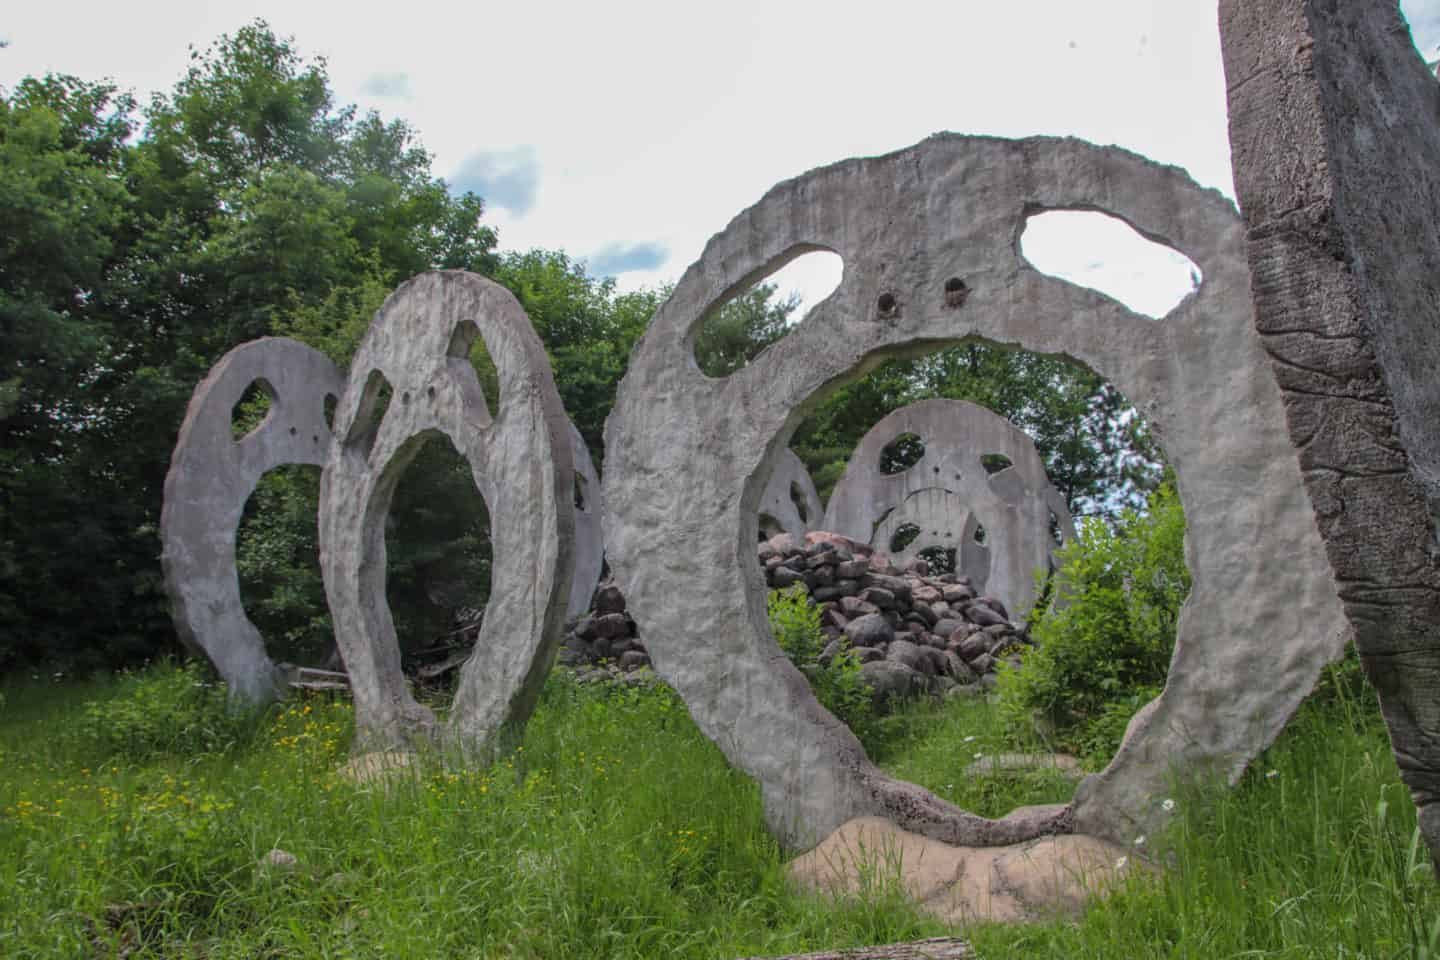 Toronto Day Trips: Visiting the Screaming Heads in Burk's Falls, Ontario